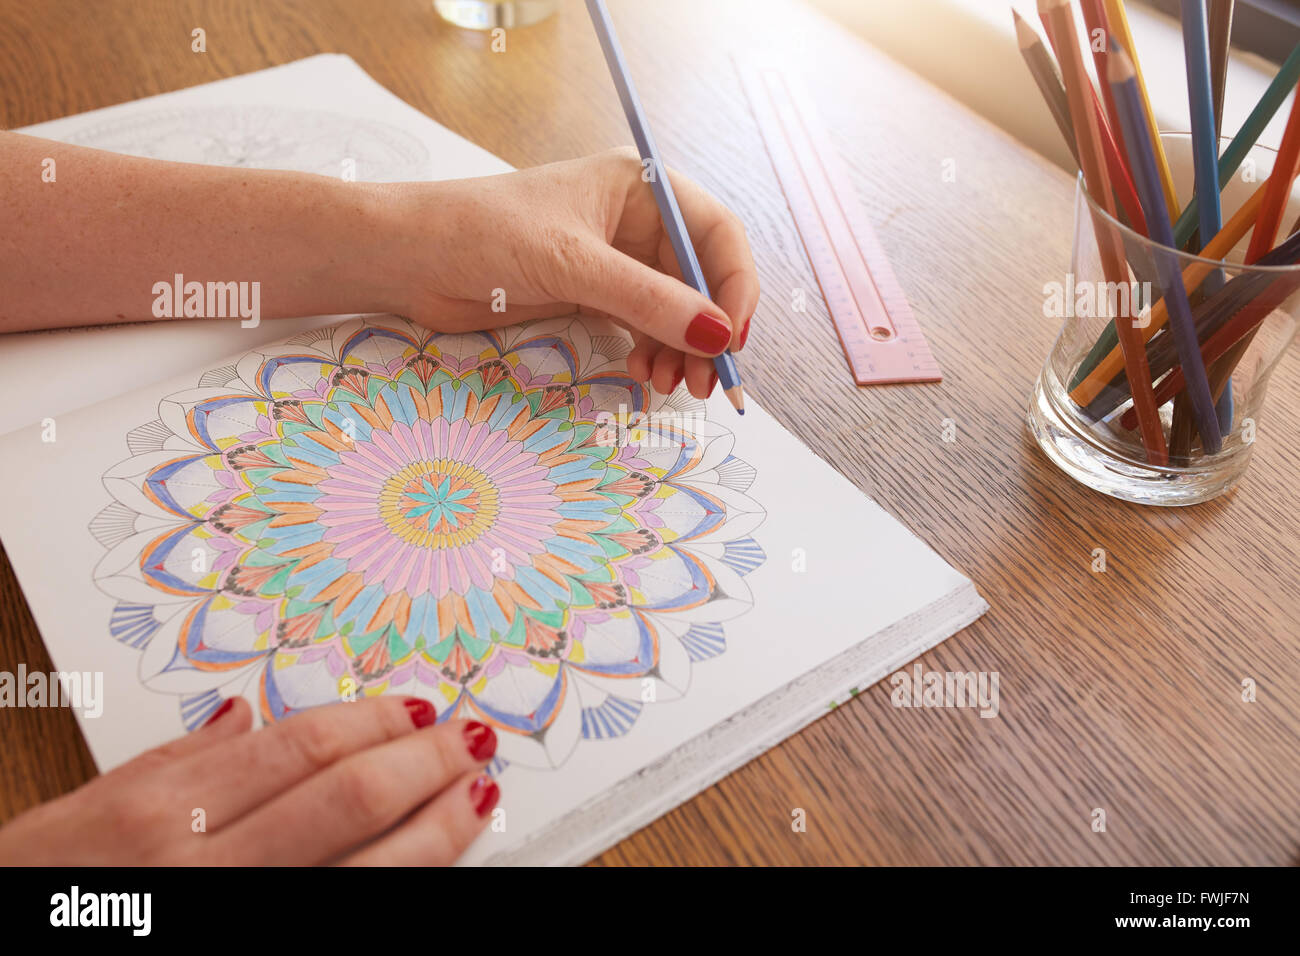 Image Gros plan femme de mains en dessin à colorier d'adultes sur une table à la maison. Photo Stock